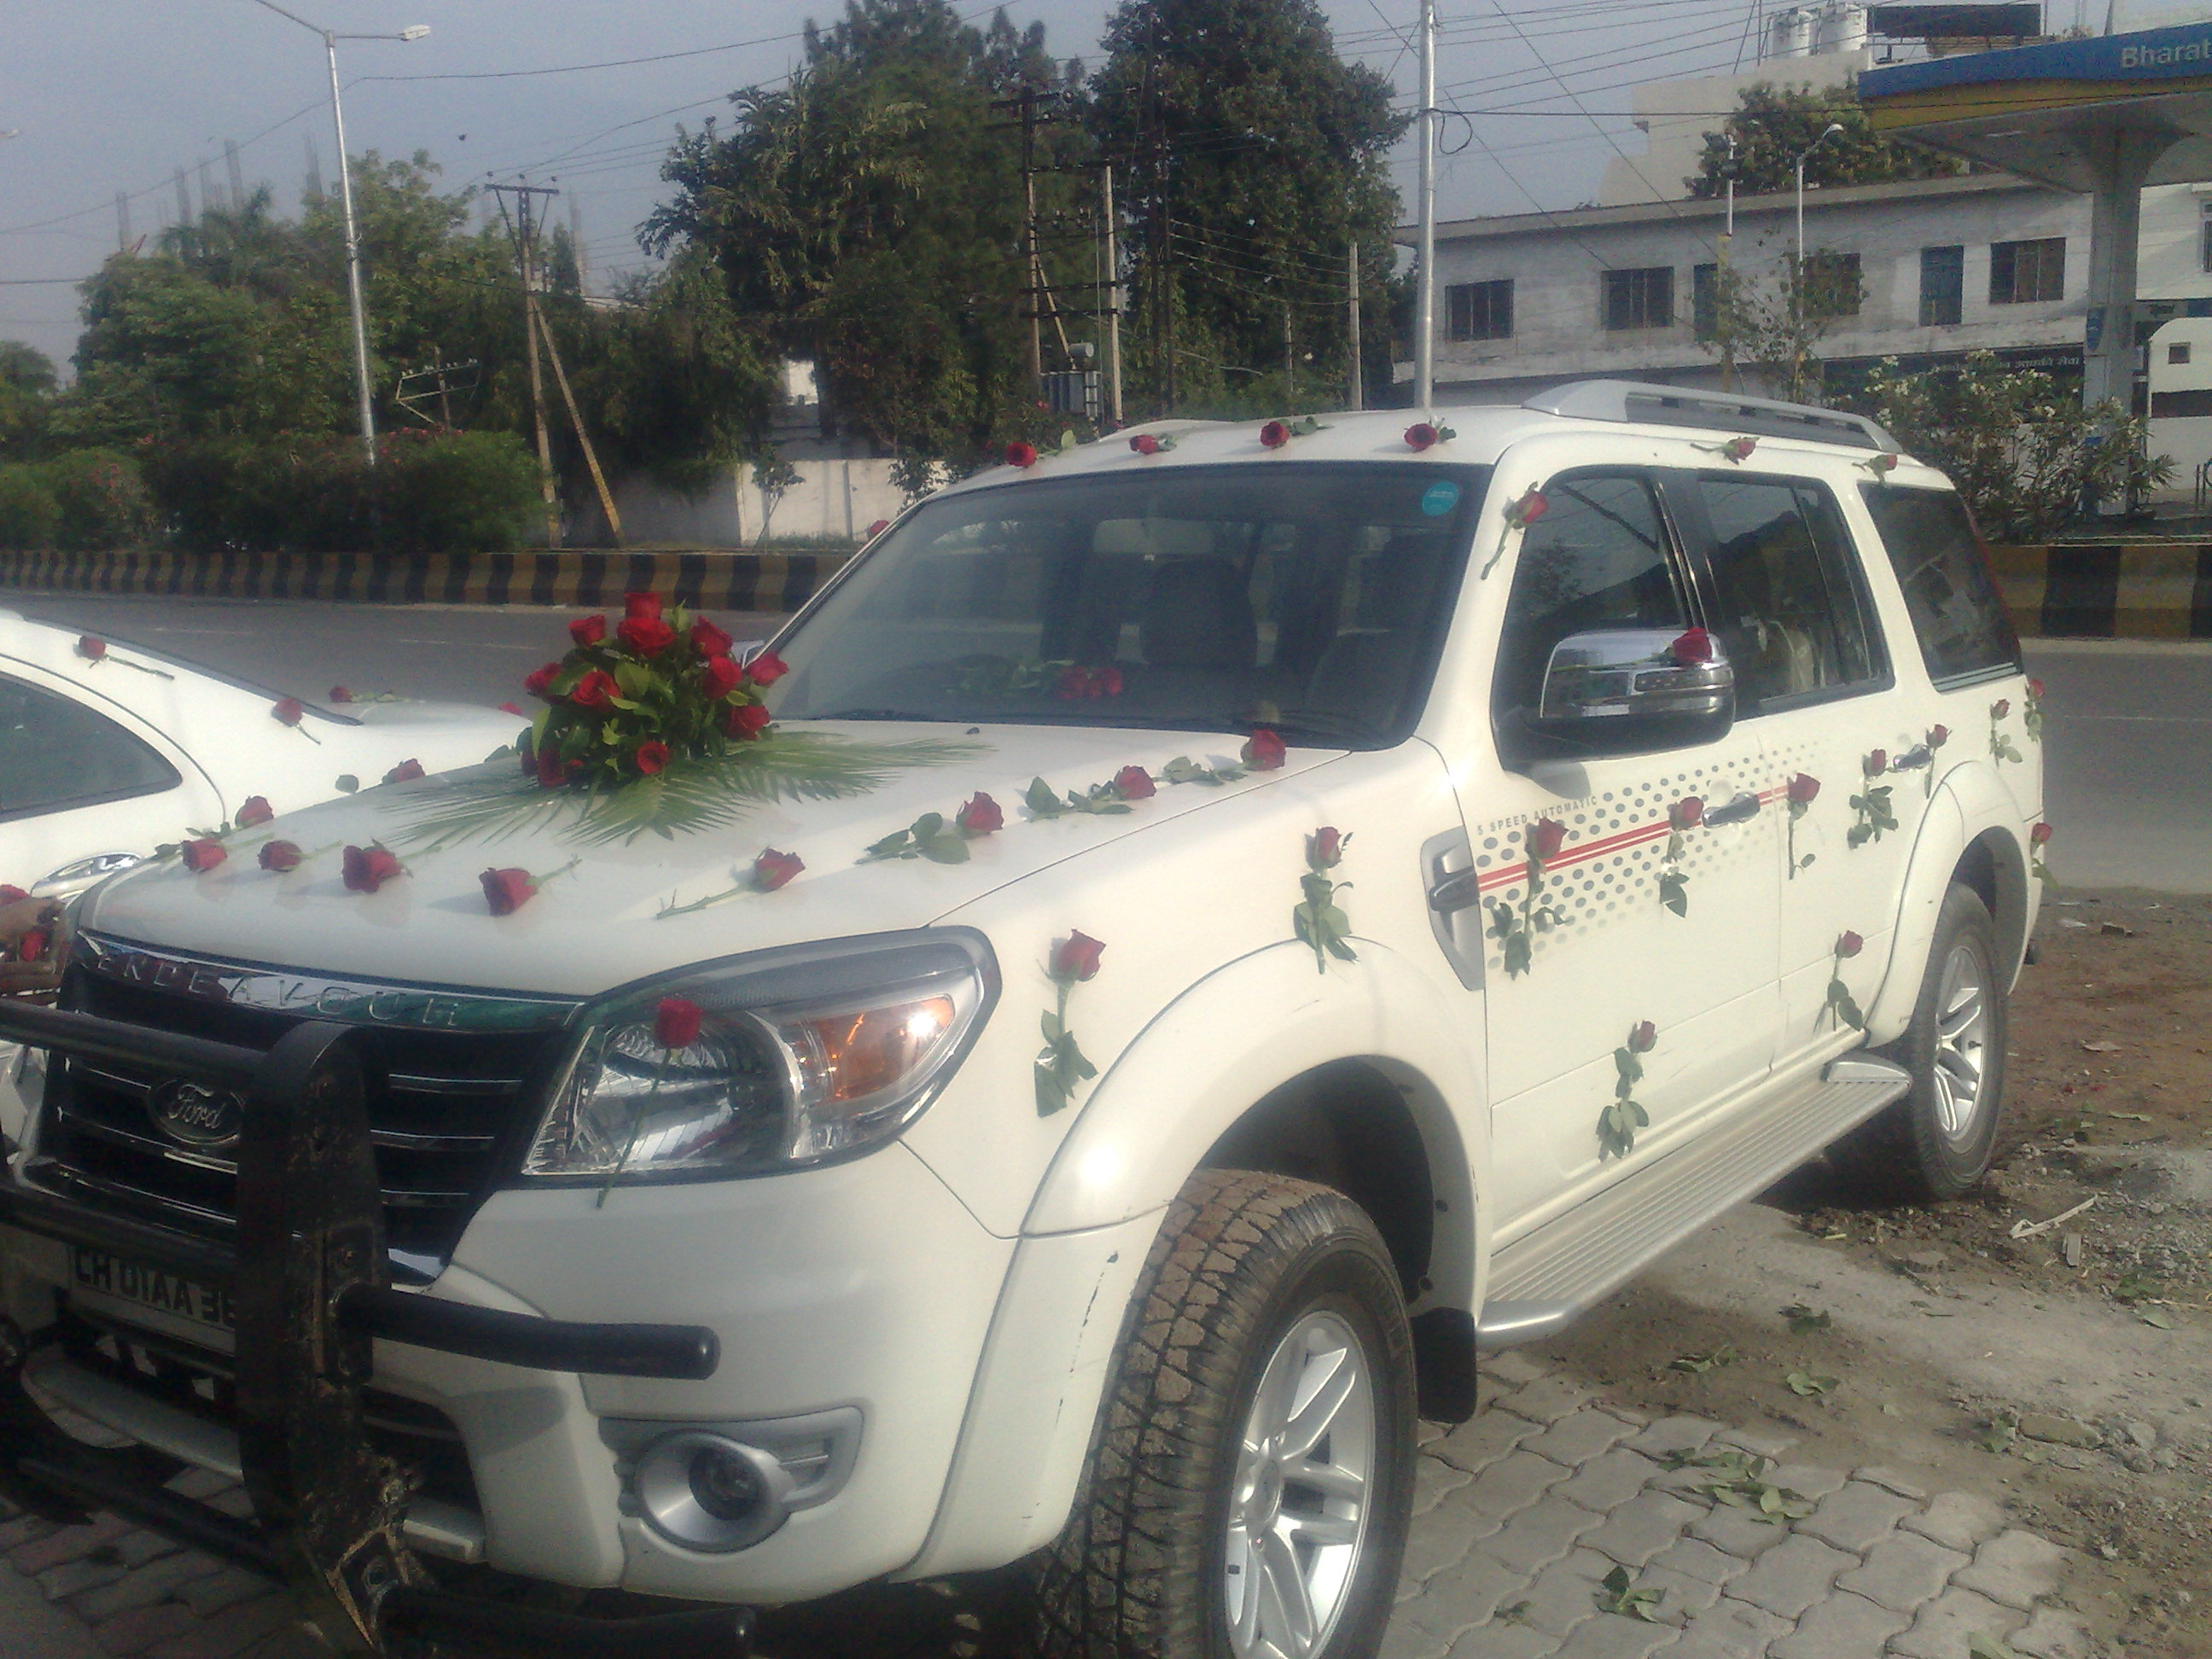 Wedding Car Rates 2014 Car Hire Without Driver Self Driven Car